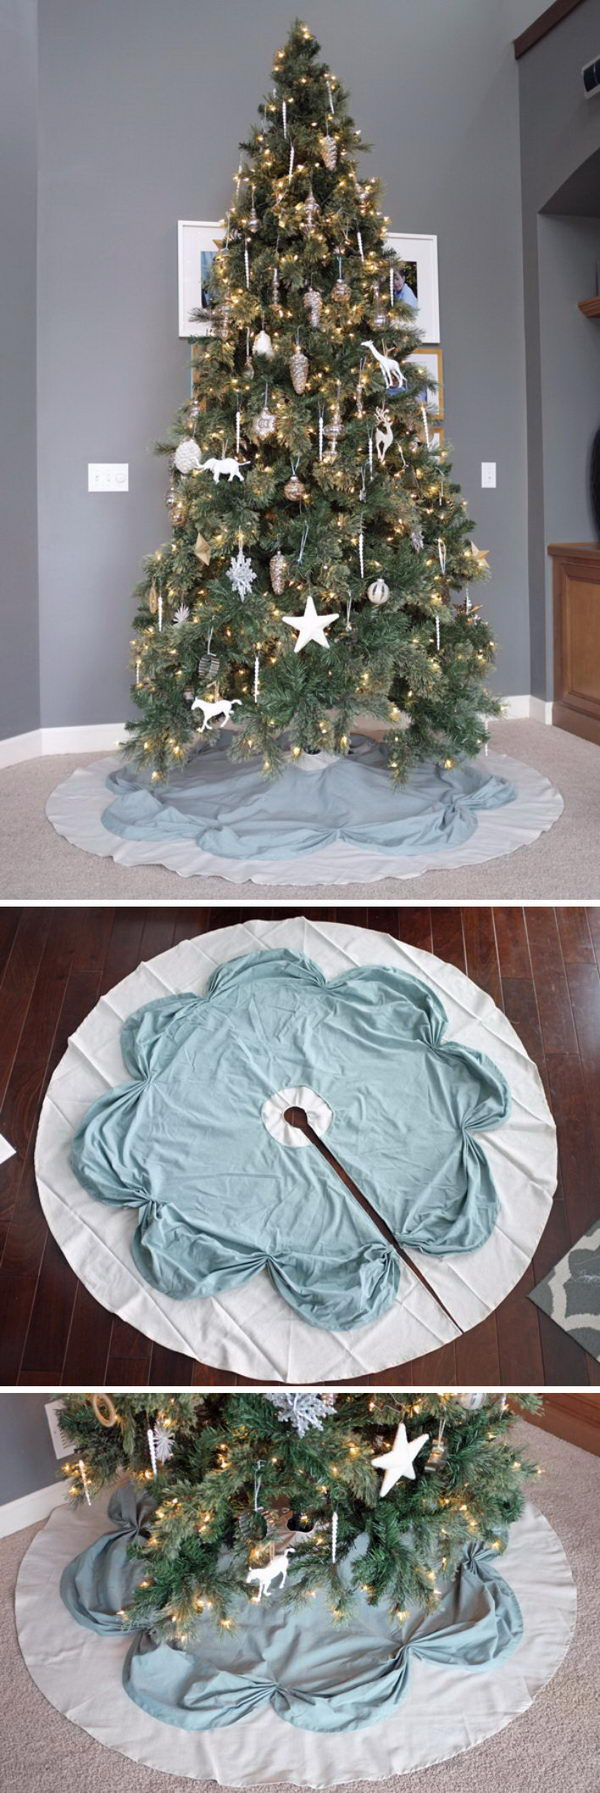 35 Diy Christmas Tree Skirt Ideas Hative